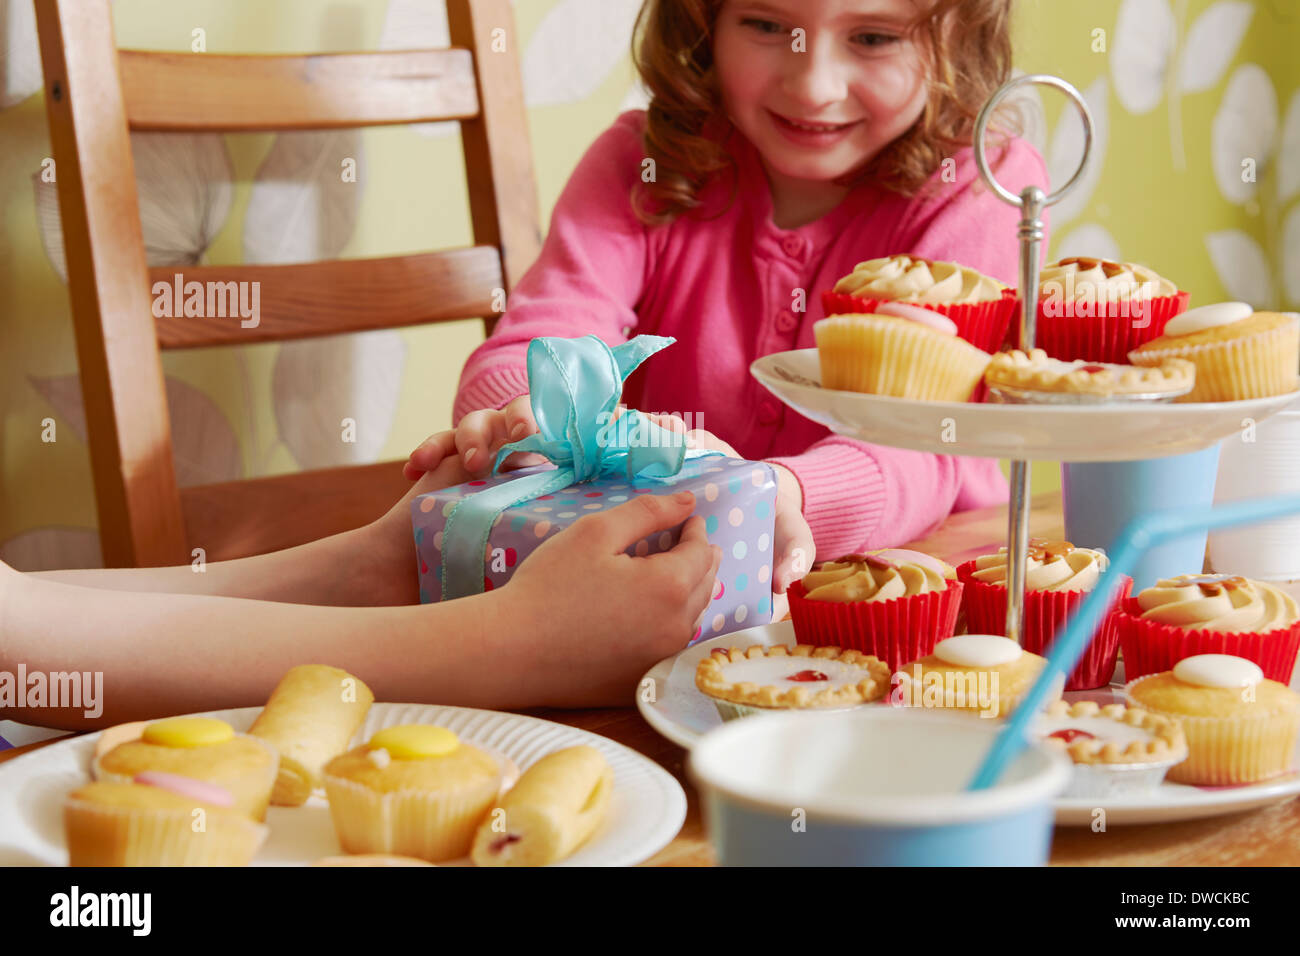 Girl receiving birthday present with cakes on cakestand - Stock Image